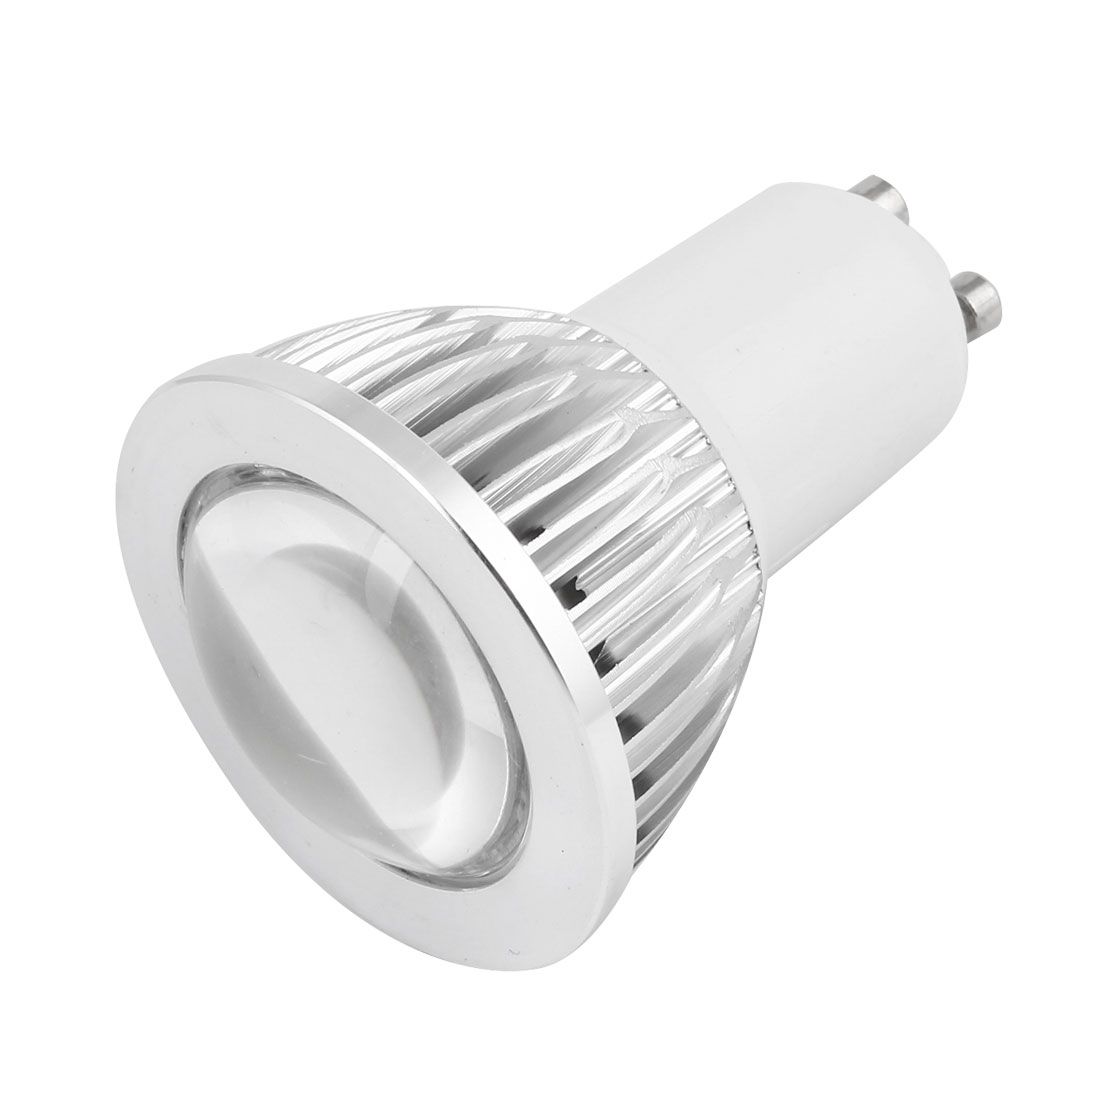 AC 85-265V 3W GU10 High Power White COB LED Light Spotlight Lamp Bulb